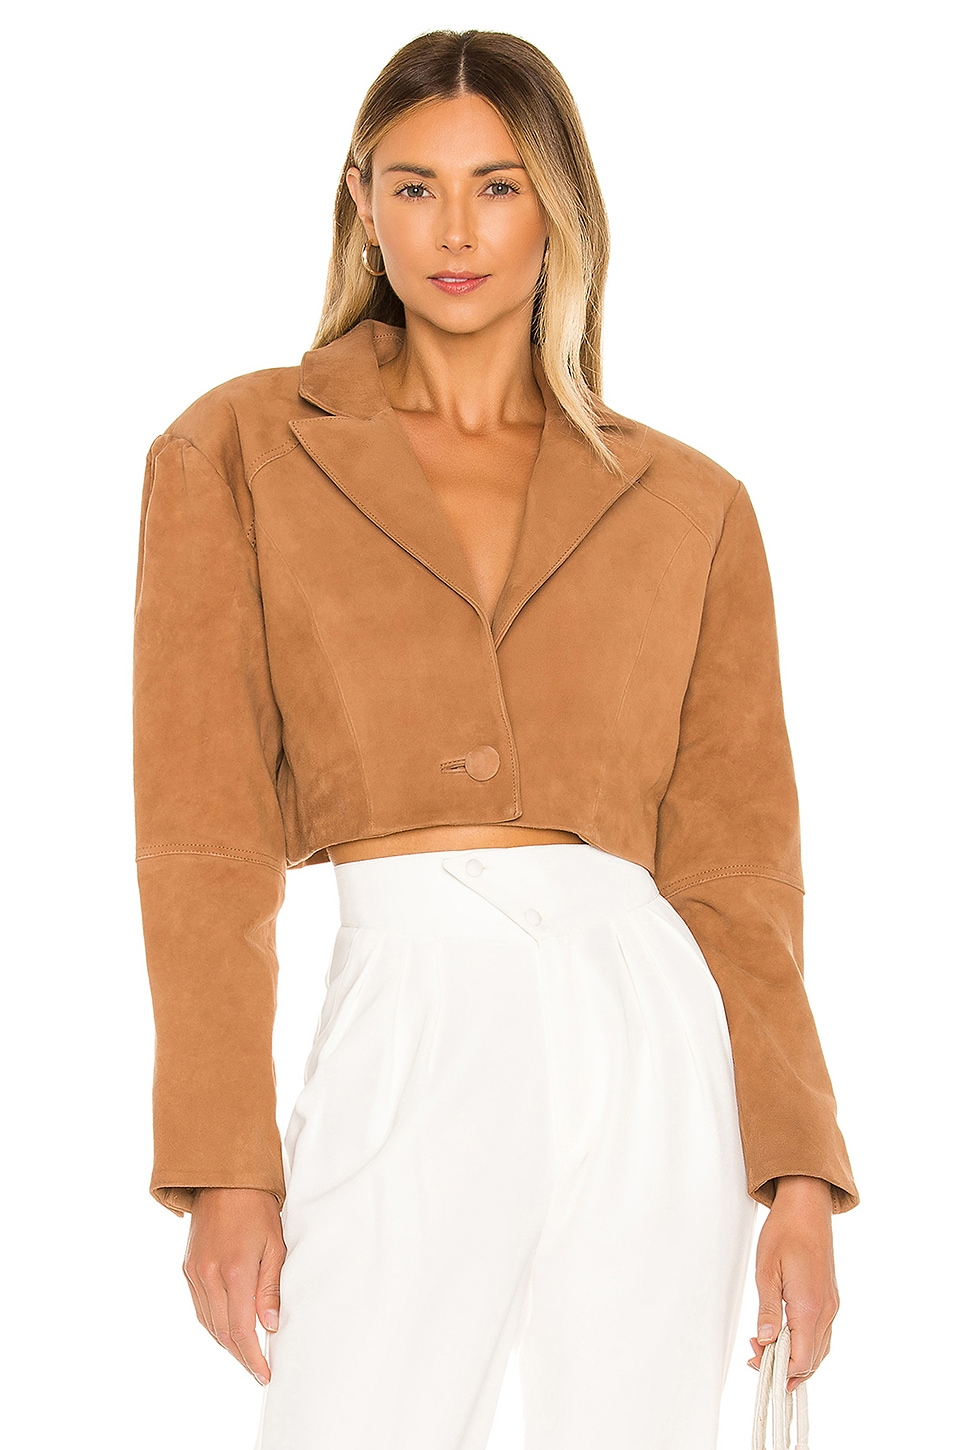 L'Academie Ansley Cropped Leather Jacket in Nude Camel